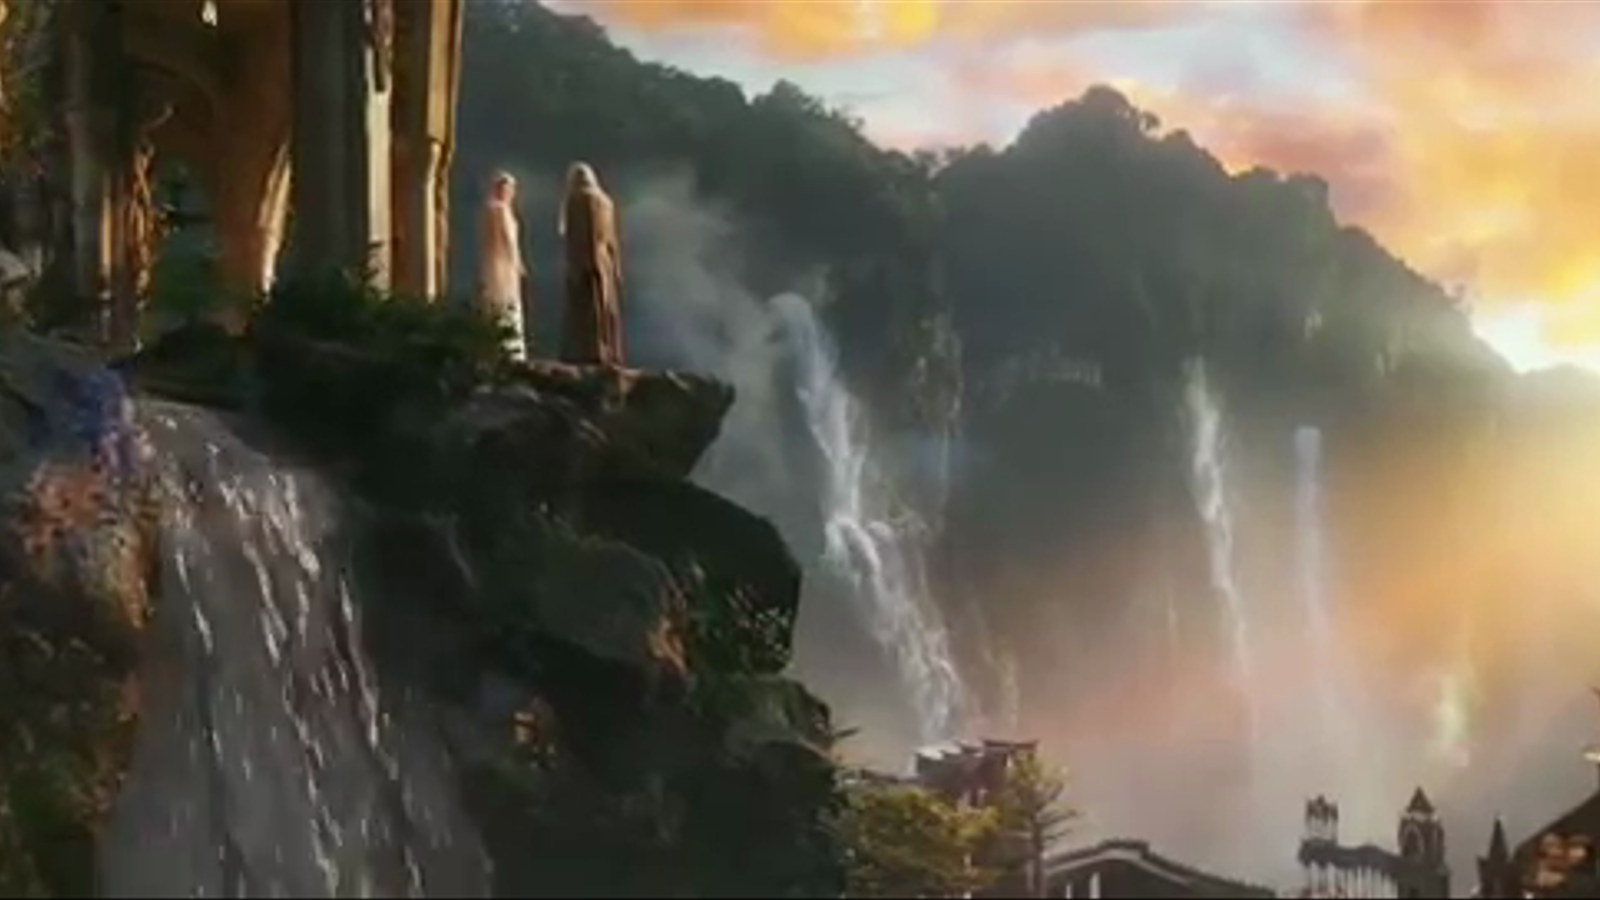 Tràiler de 'The Hobbit: An Unexpected Journey', de Peter Jackson